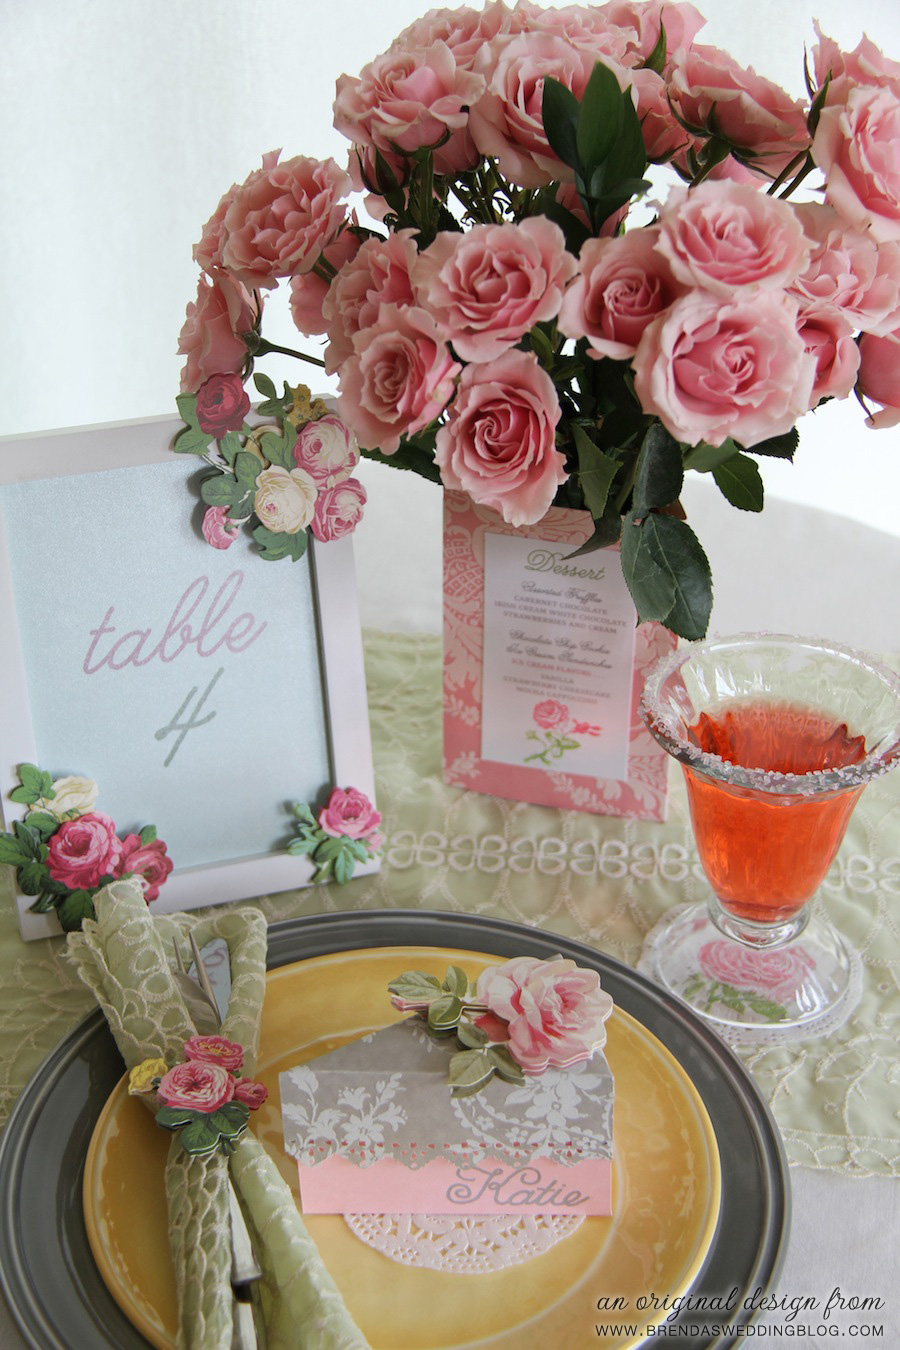 DIY Wedding Tablesetting with Place Card / Favor Box, Tri-fold Menu as Centerpiece Holder, Rubber Stamped Doily and Table Number Frame | via www.brendasweddingblog.com